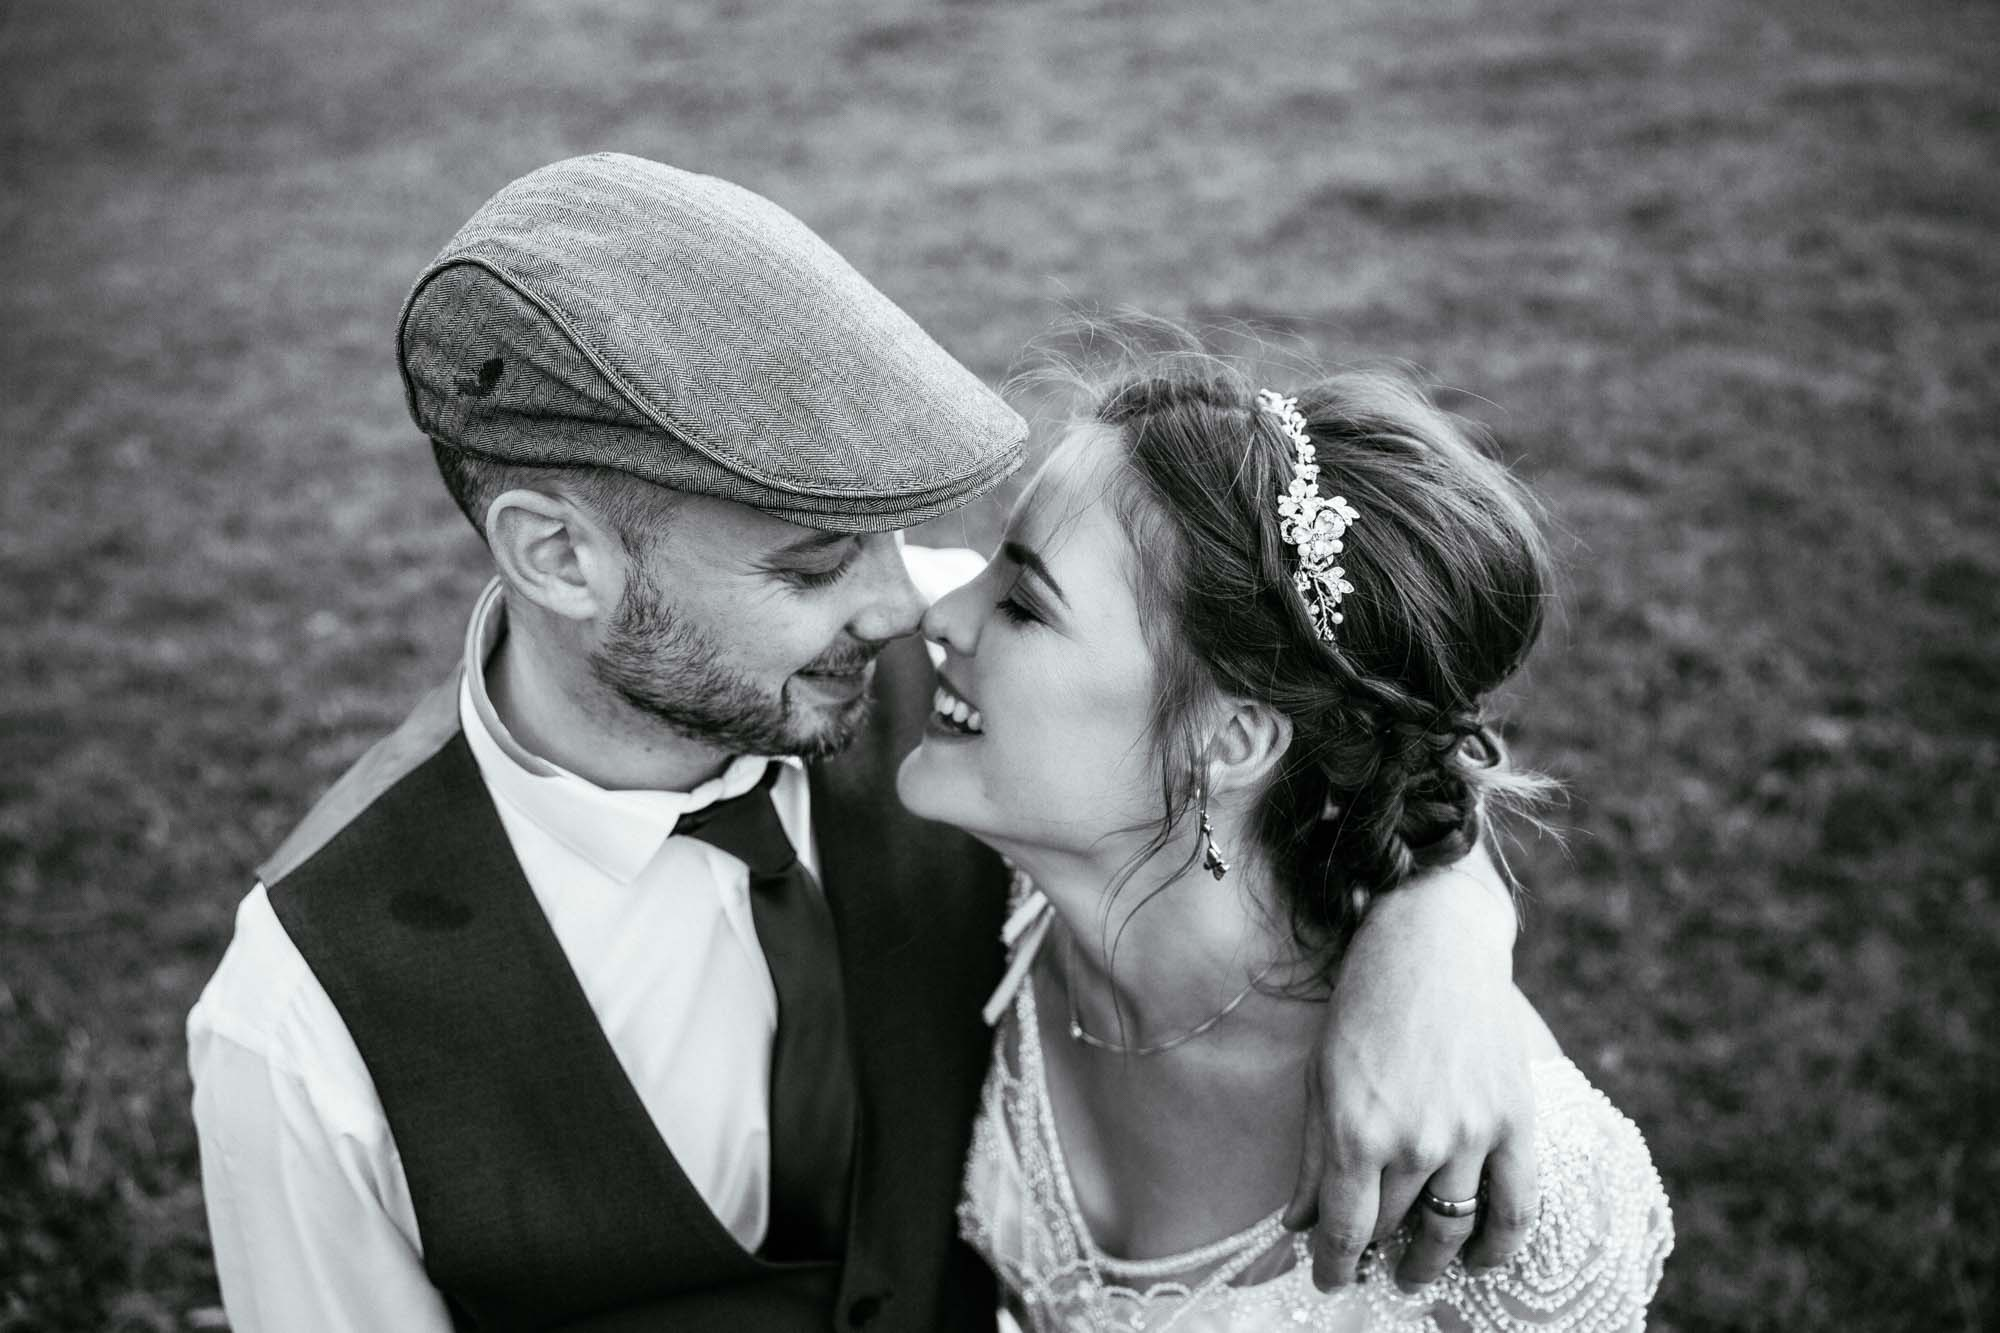 Quirky Wedding Photos Hargate Hall Peak District